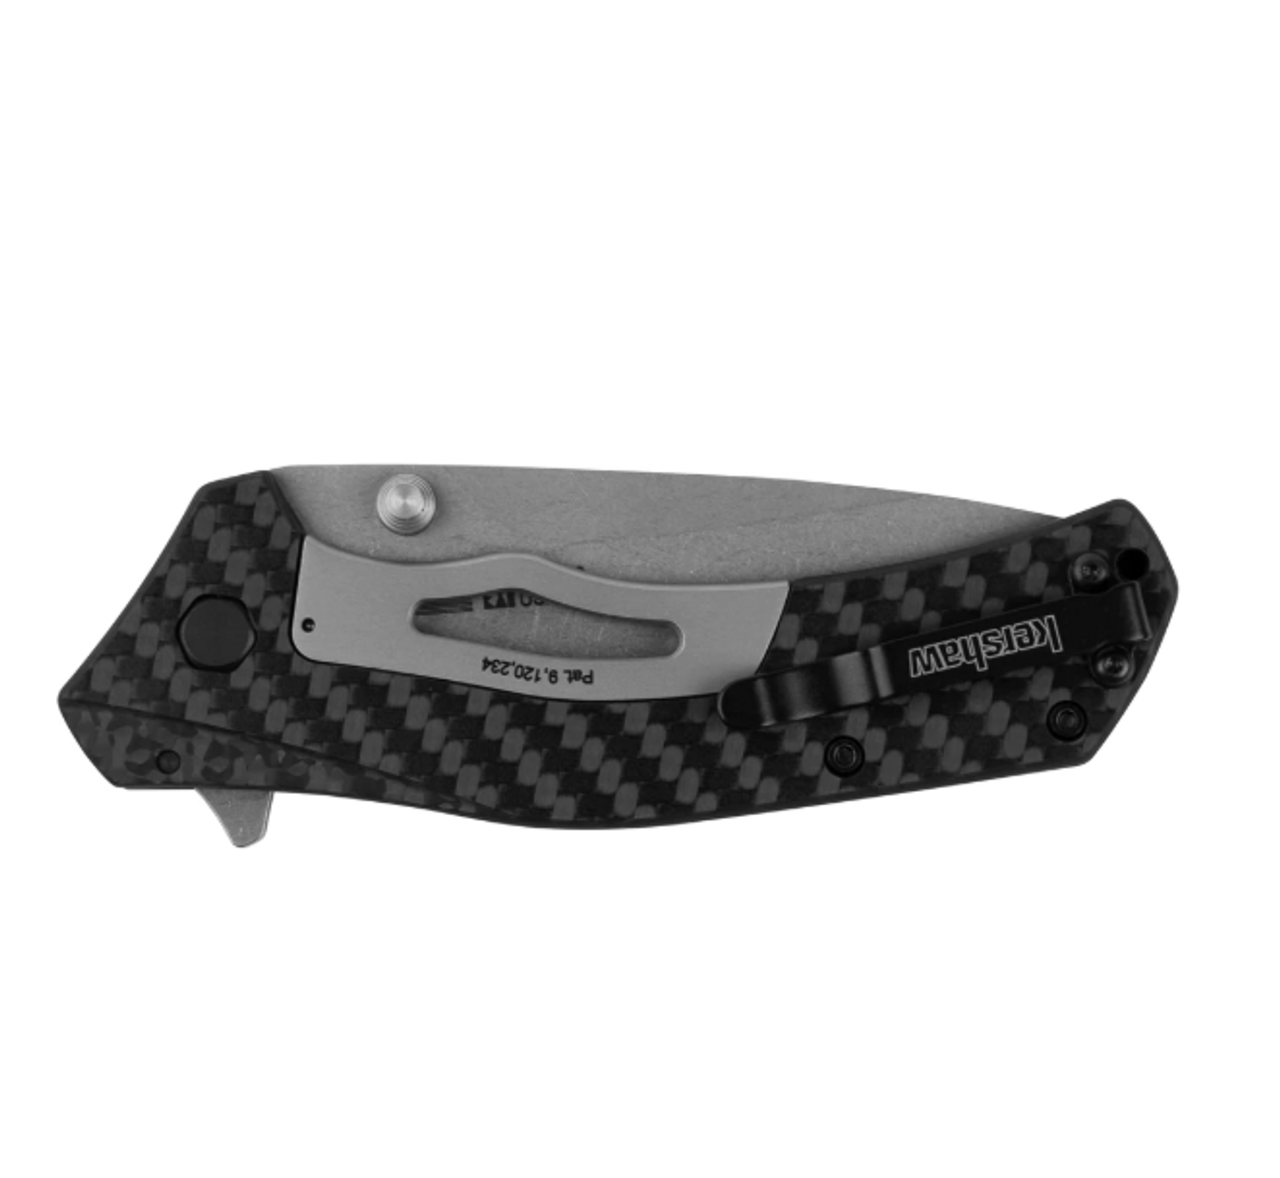 Kershaw Knockout 1870CFM390 Carbon Fiber M390